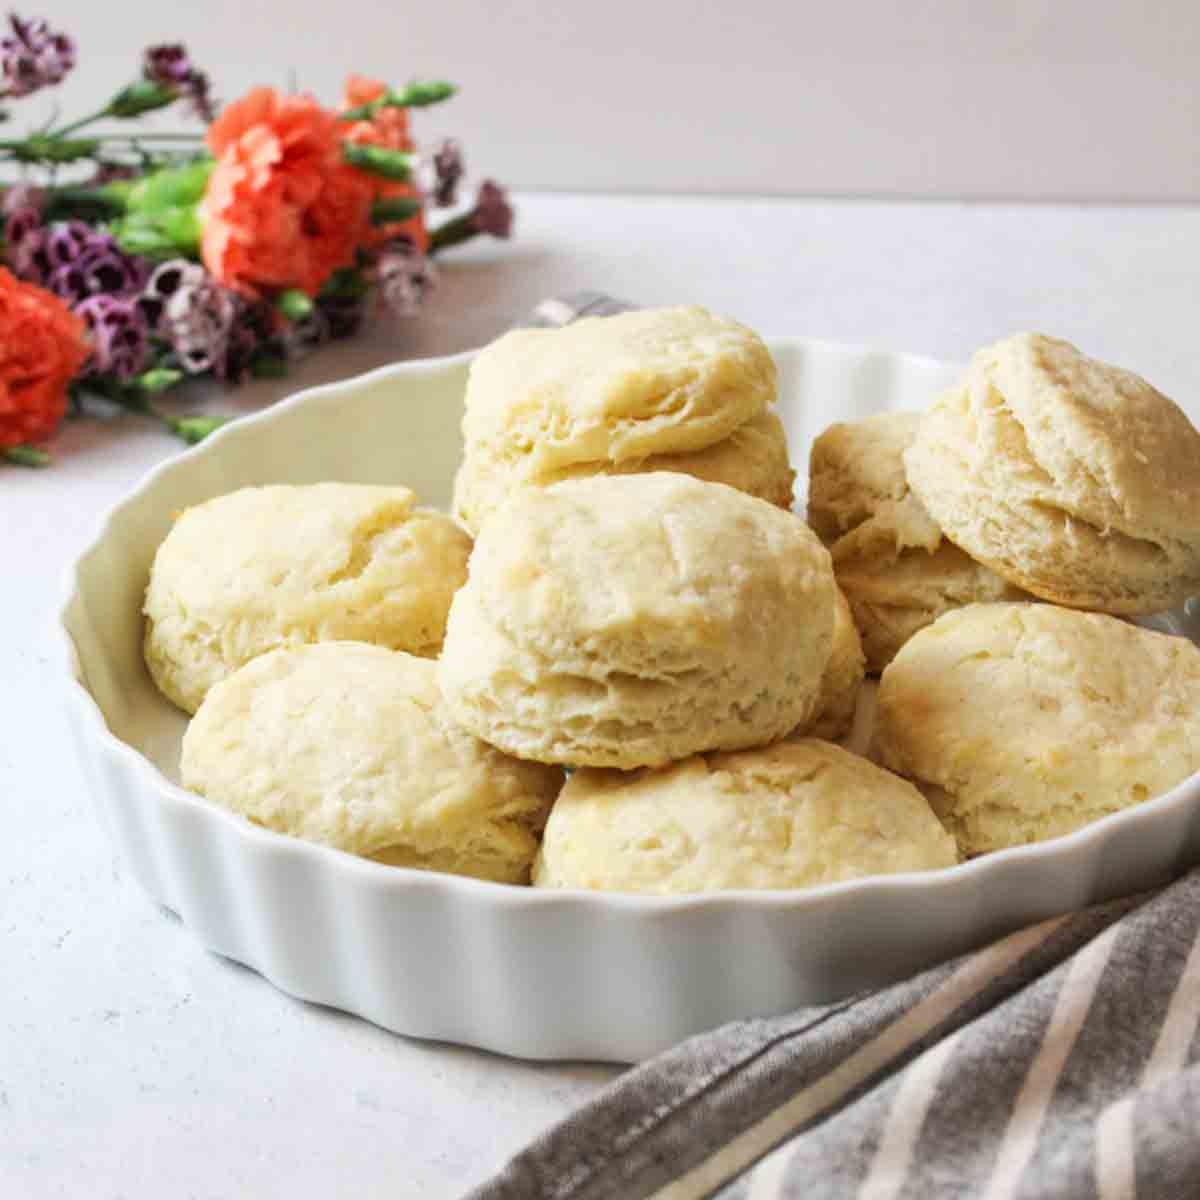 an uplcose view of a dish full of baking powder biscuit with fresh flowers in background